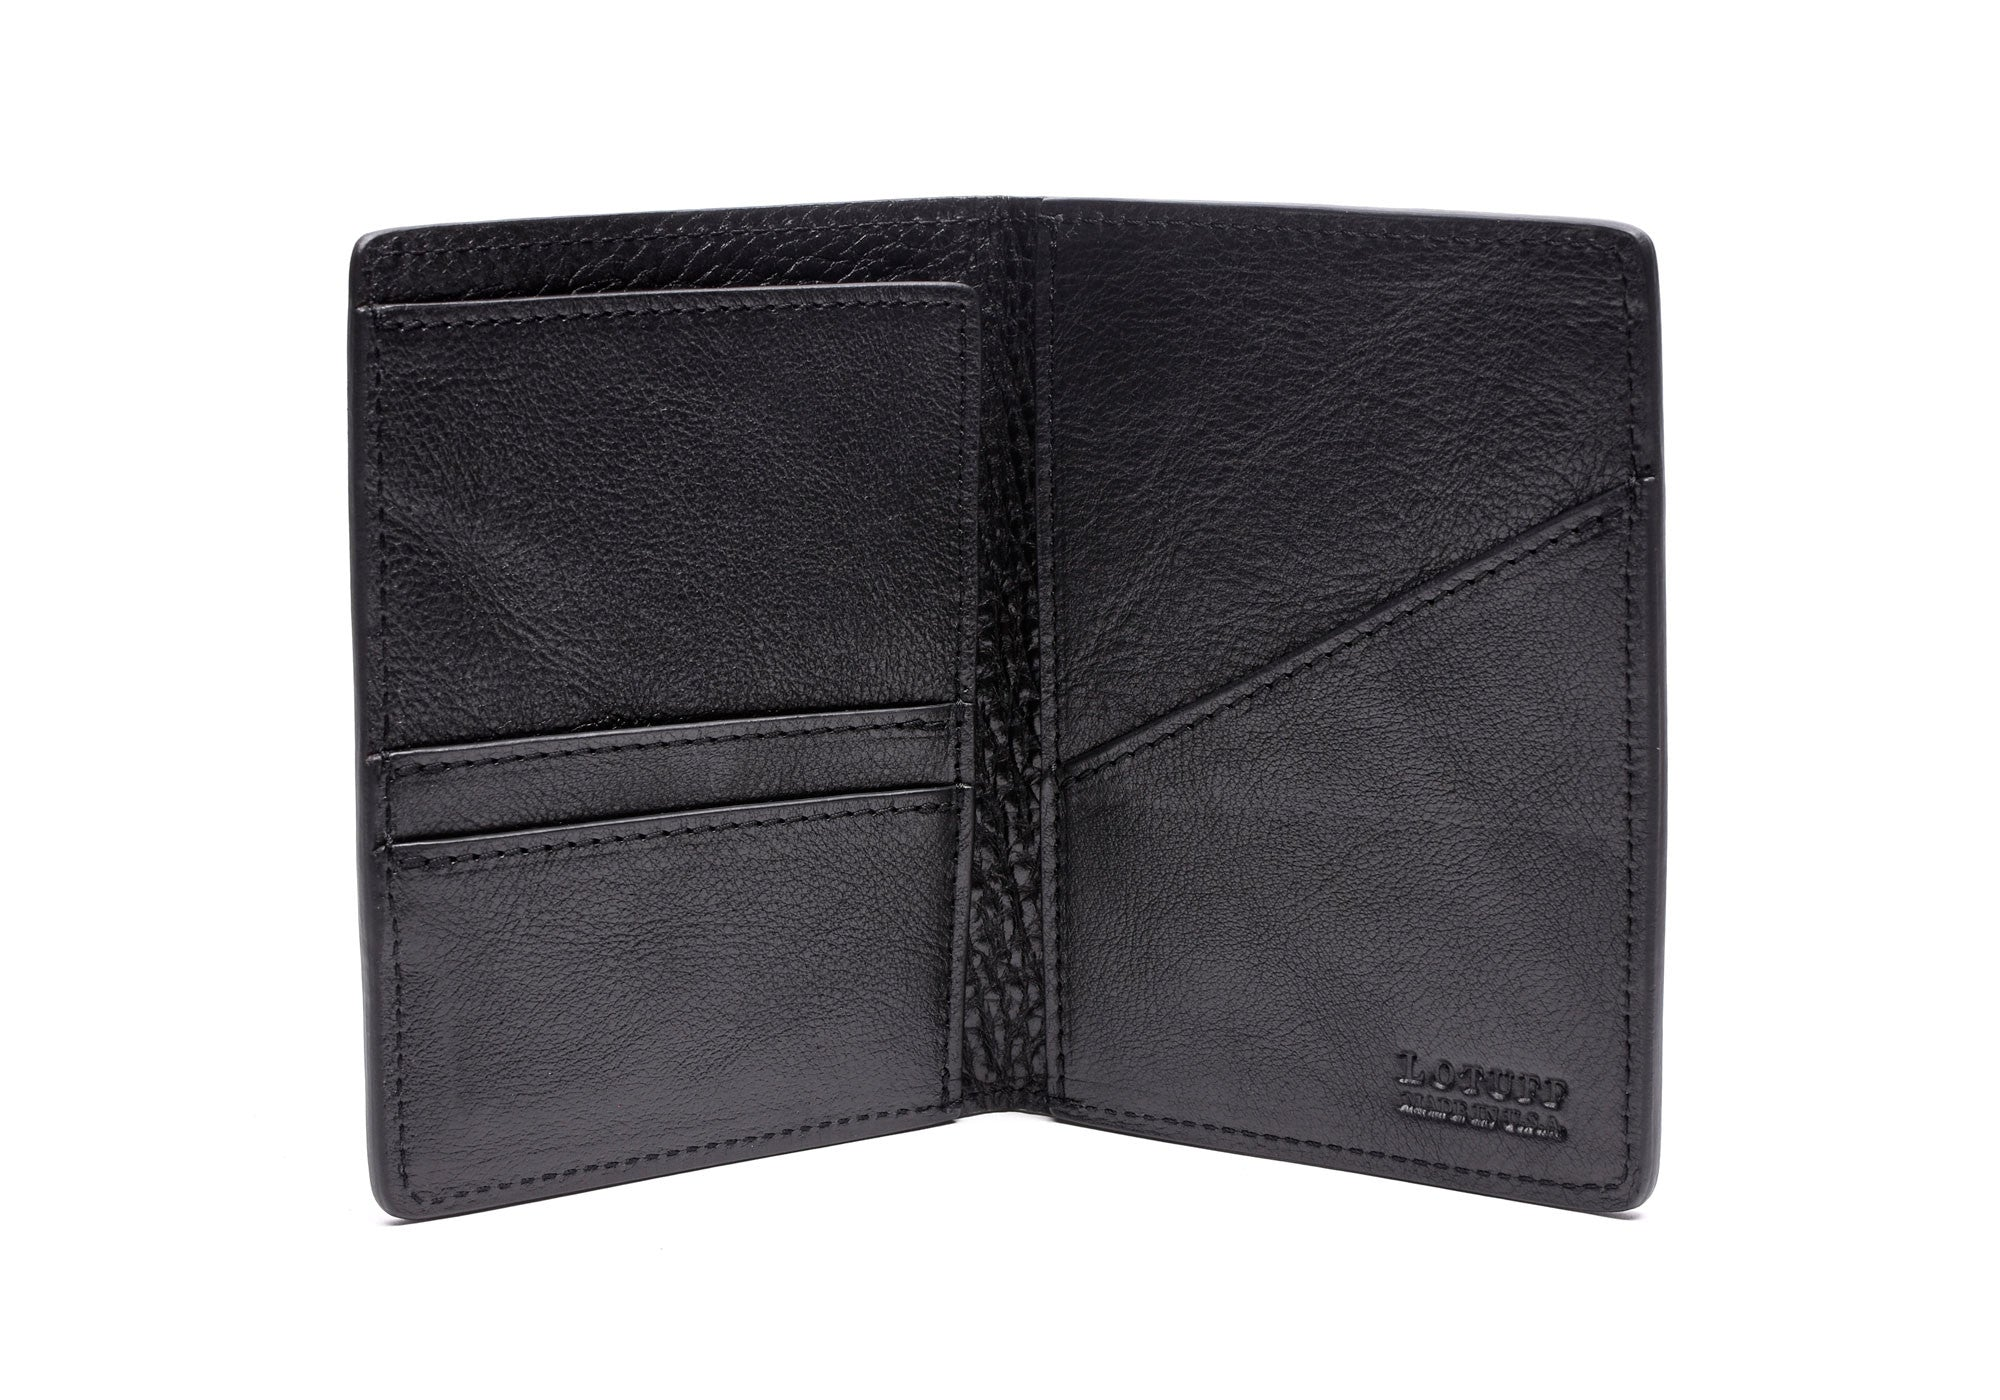 Open Front View of Leather Passport Wallet Black